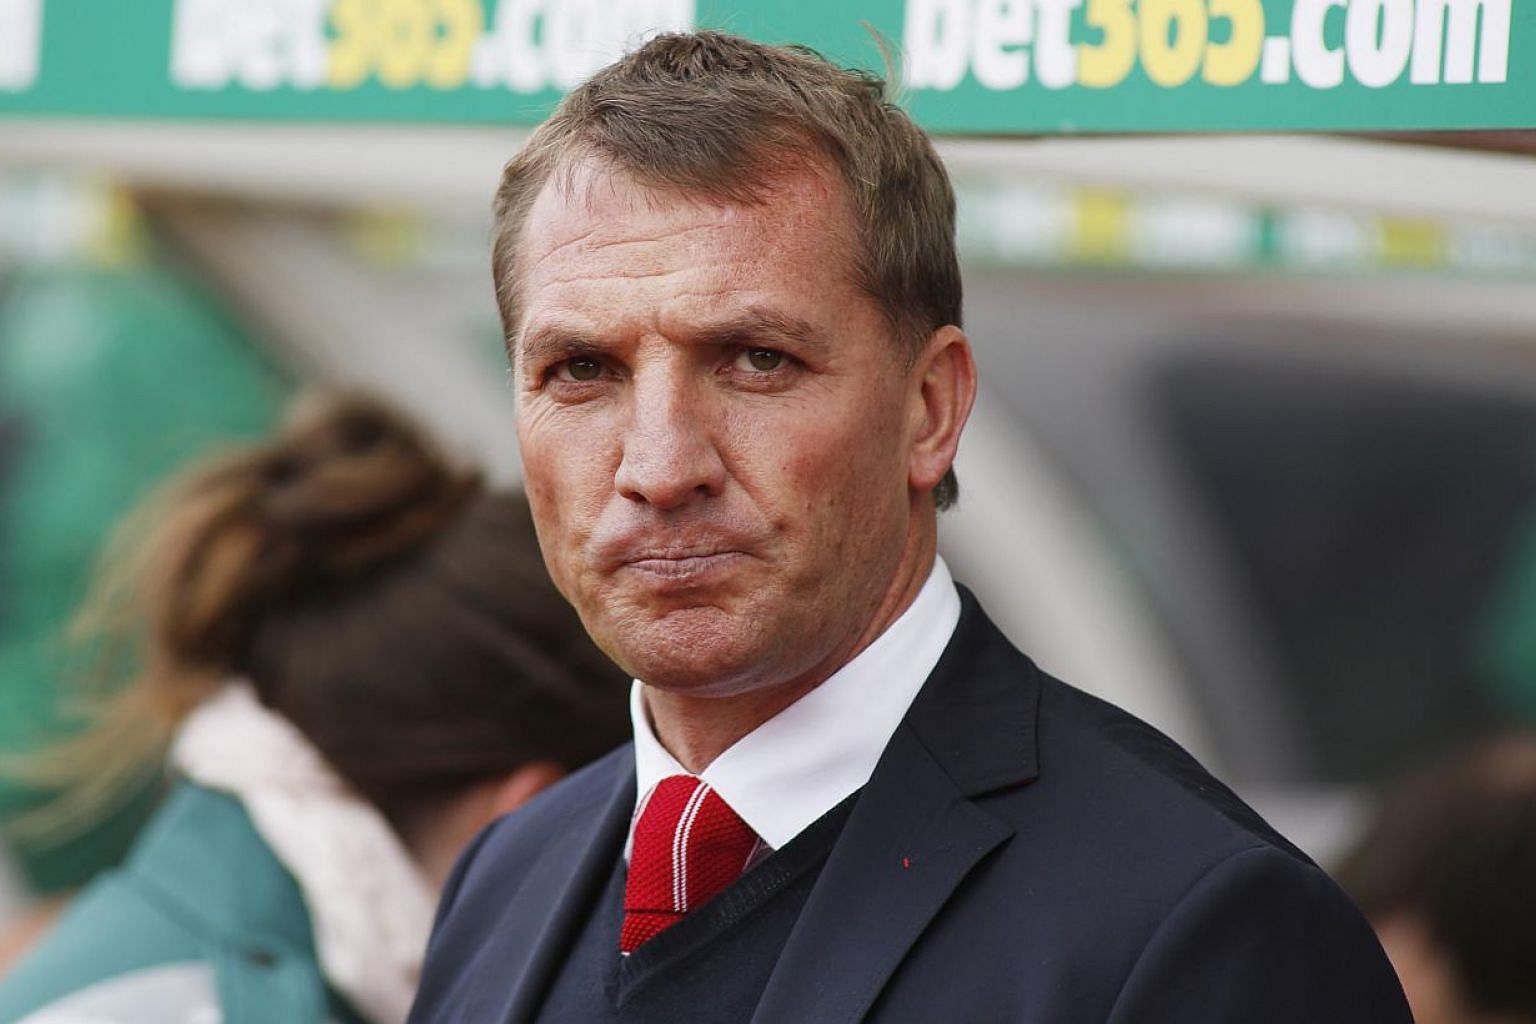 Brendan Rodgers will be given another chance to deliver Liverpool their first league title in over a quarter of a century after he held talks with the club's American owners on Tuesday both the Press Association and the BBC reported. -- PHOTO: REUTER